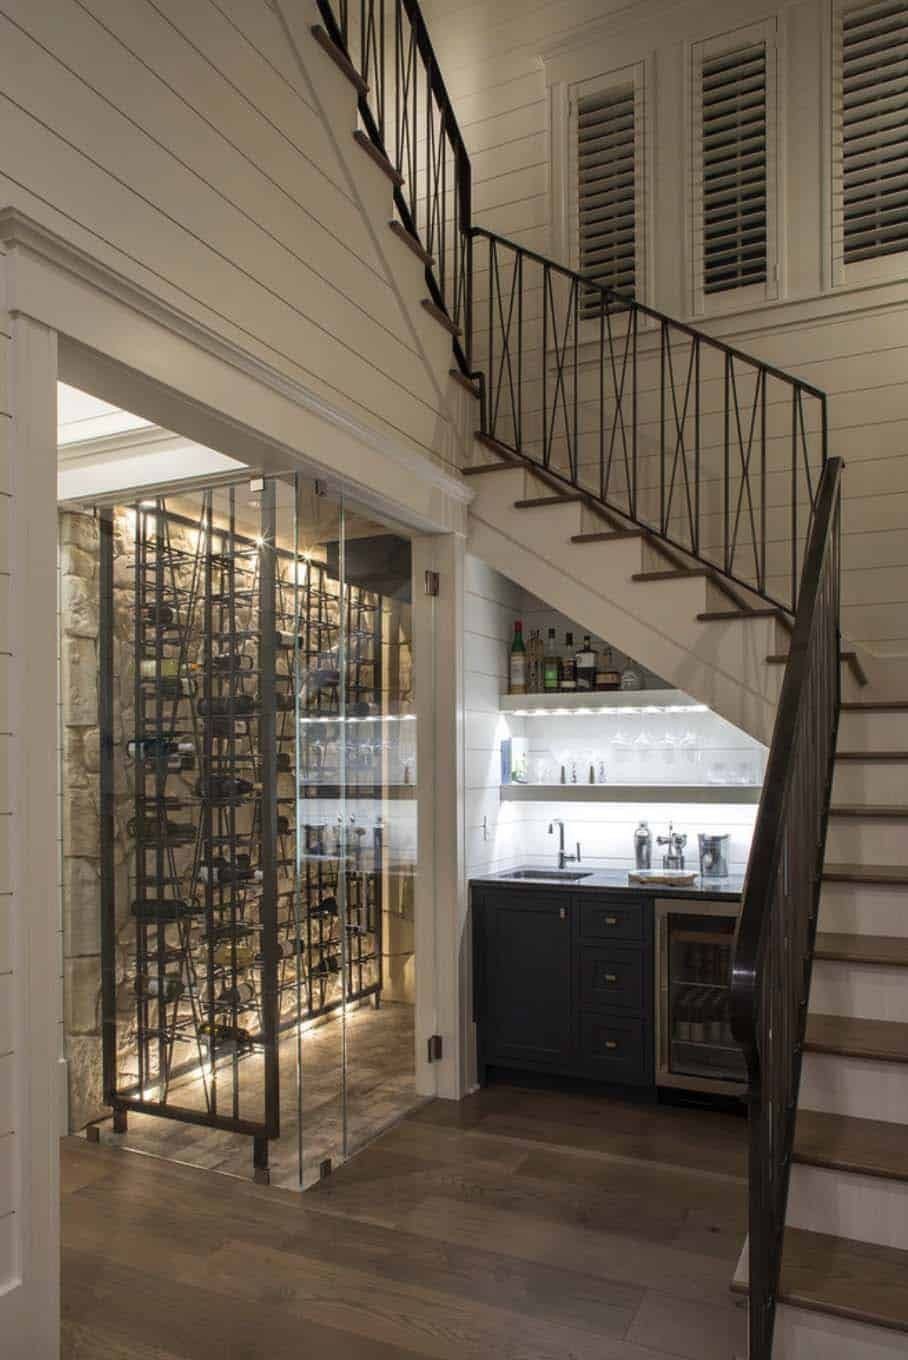 Incredible Beach House In Watercolor Showcases Airy Coastal Vibe Glass Wine Cellar Under Stairs House Of Turquoise